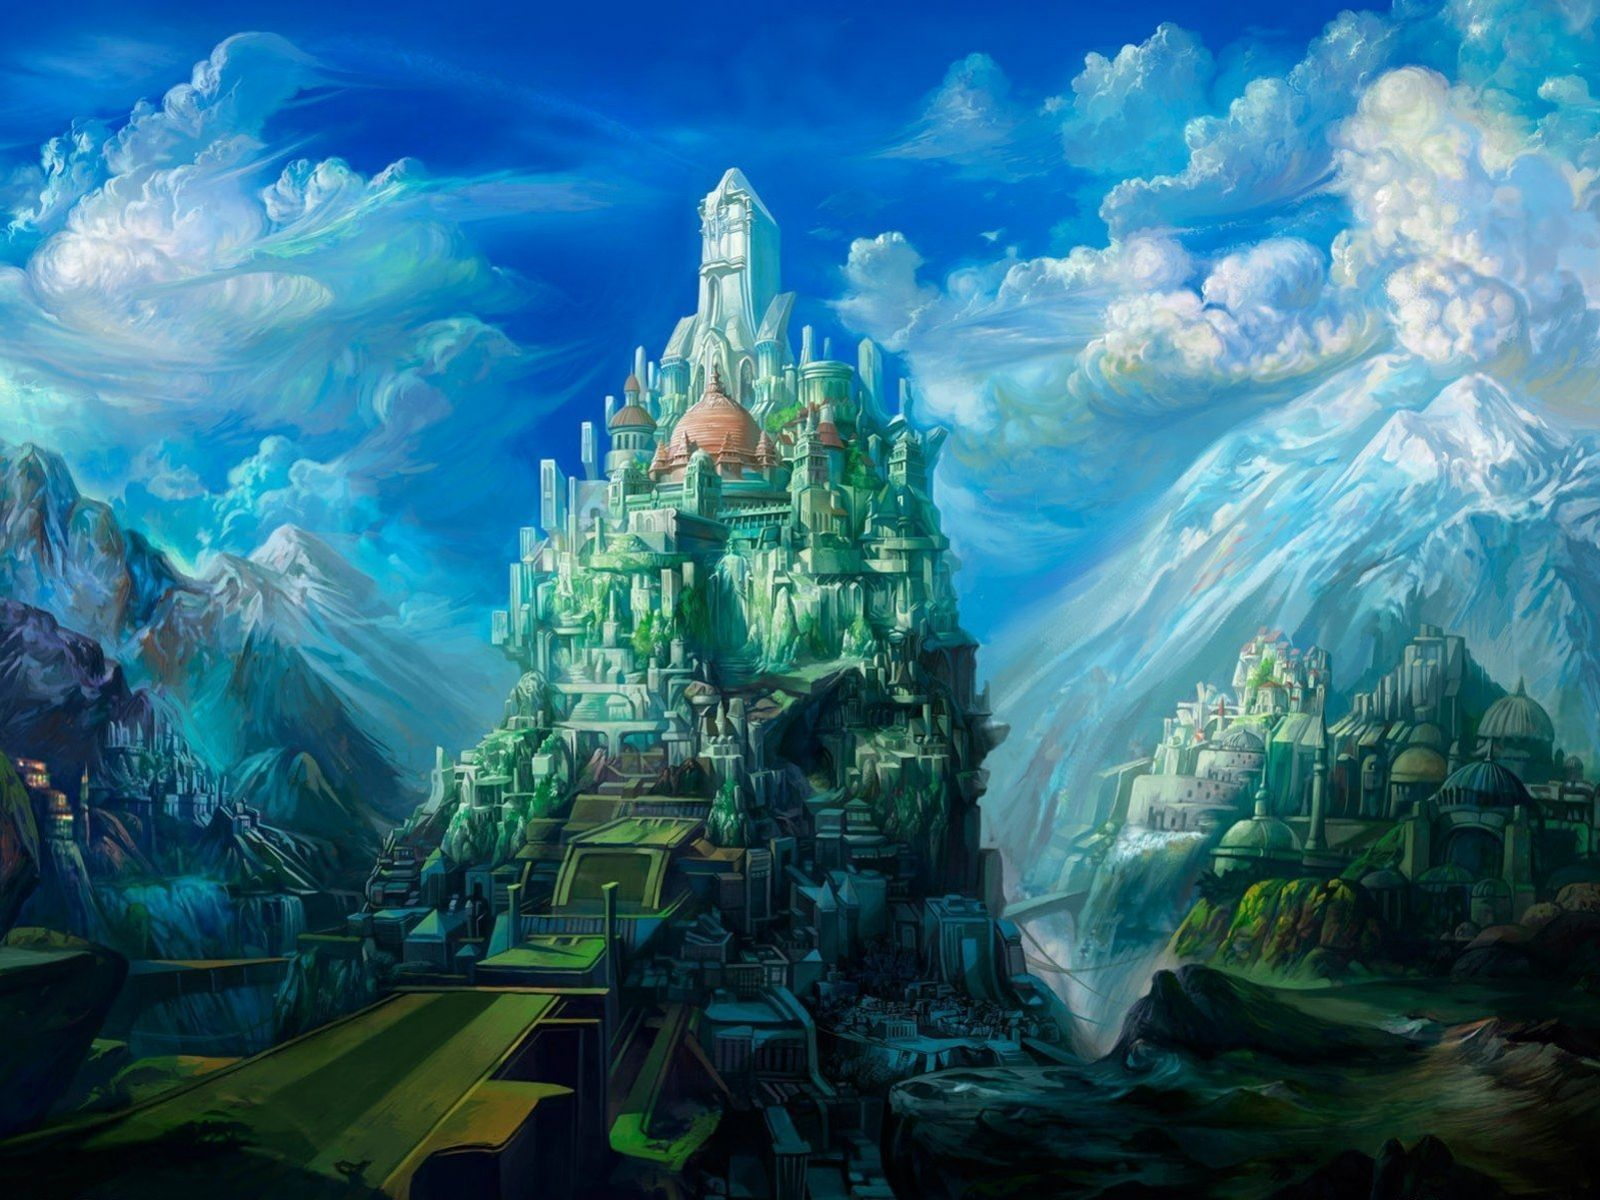 Fantasy Art Scenery Wallpapers